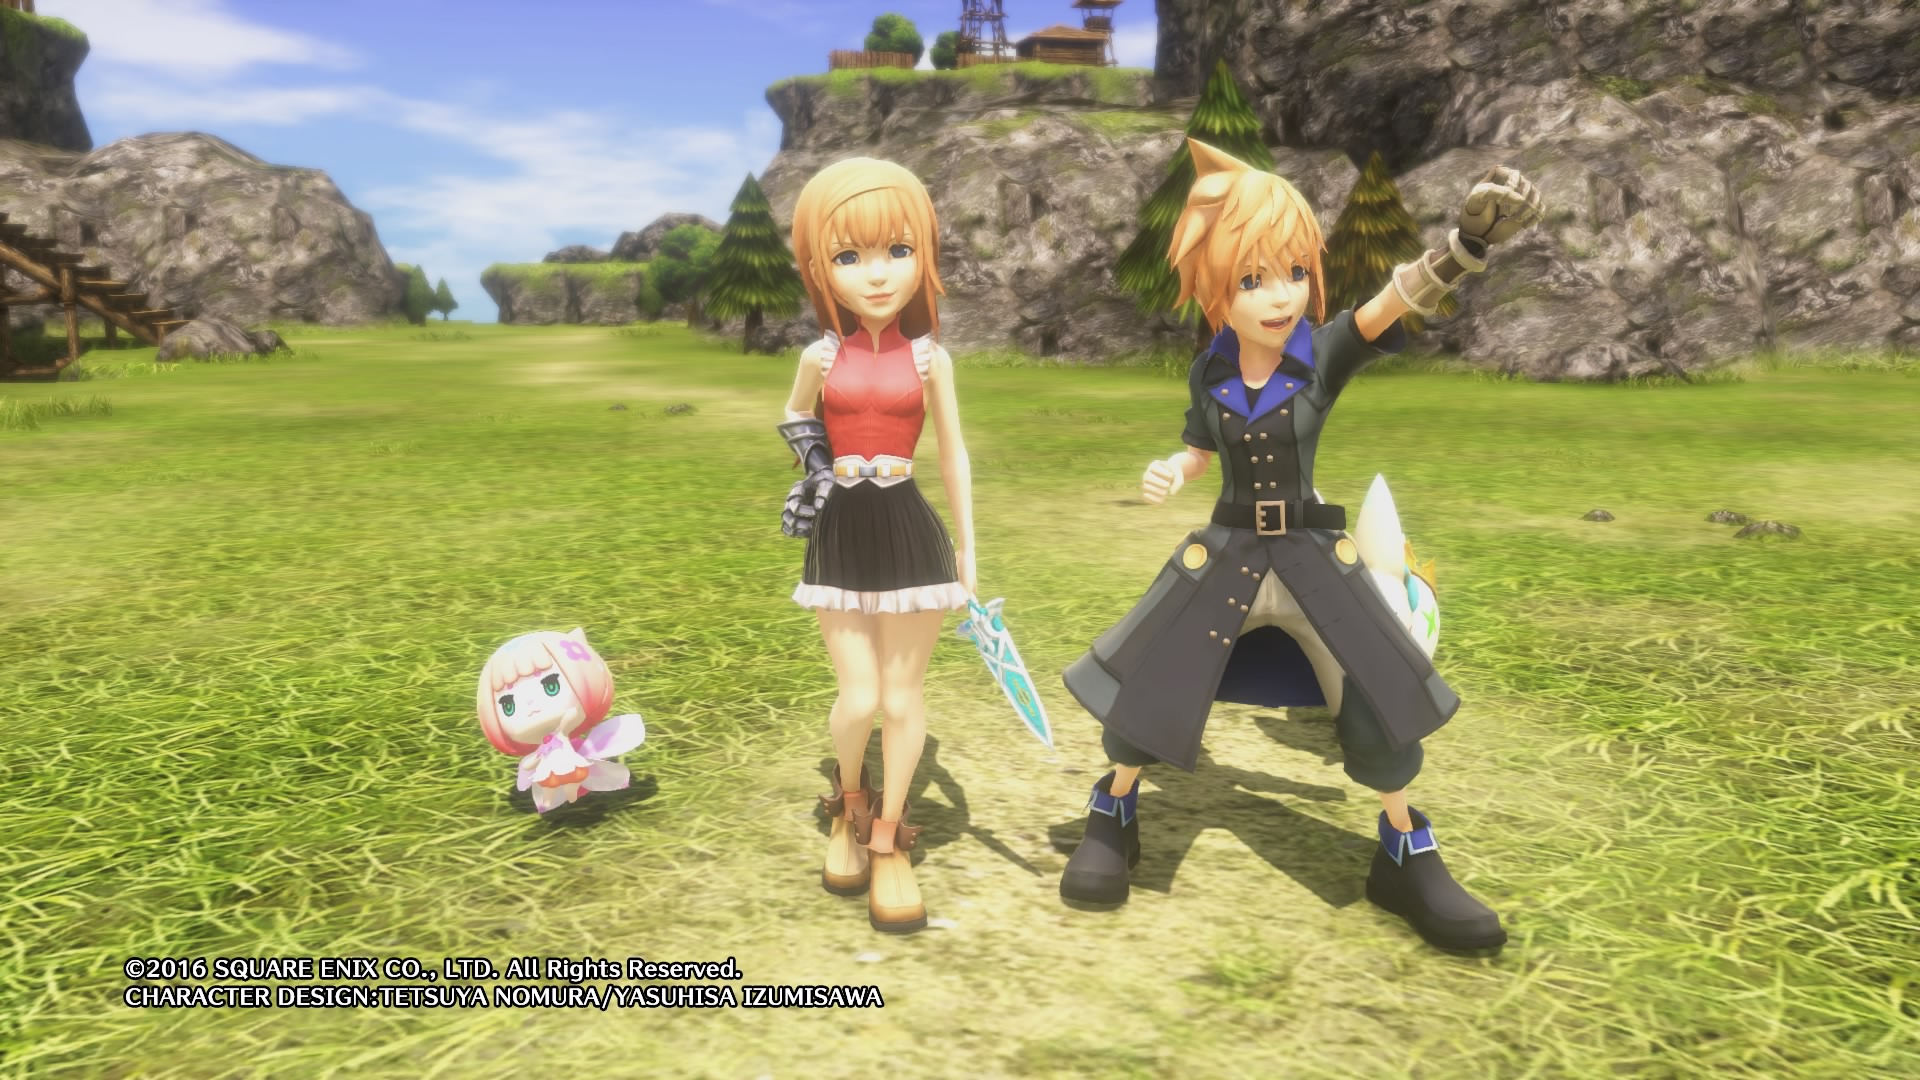 WORLD OF FINAL FANTASY Dungeon Demo_20161017171211